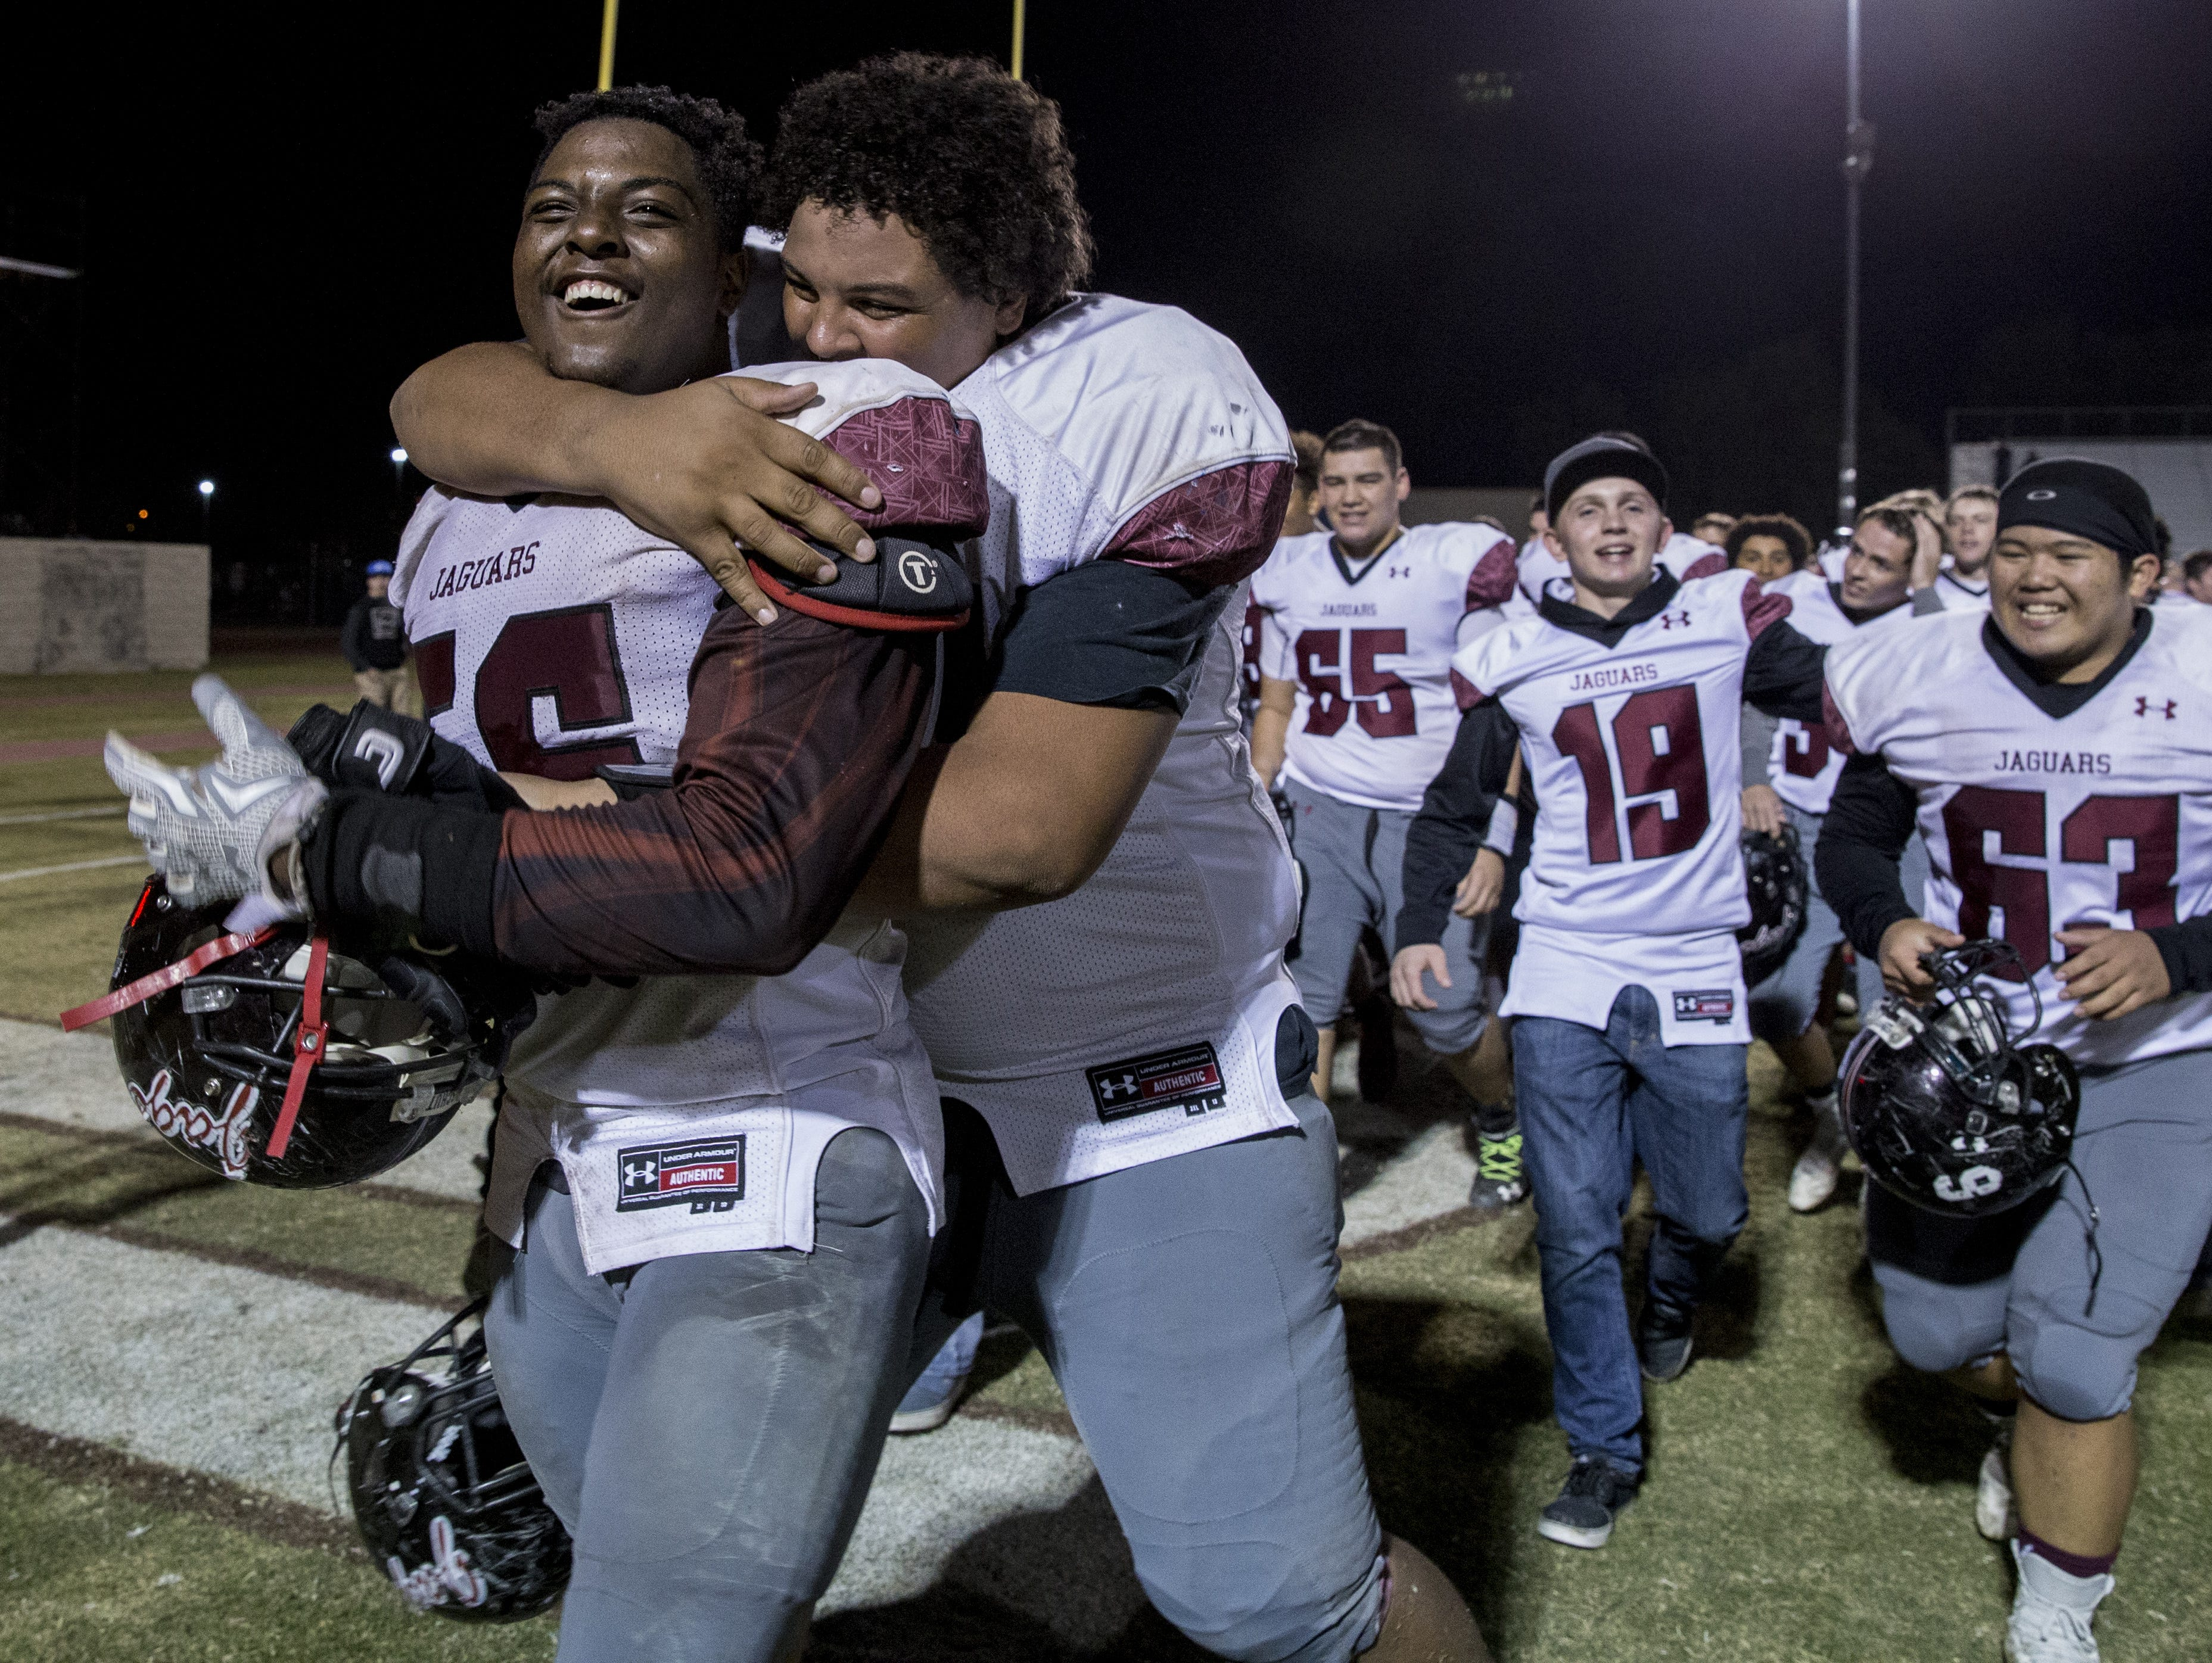 Desert Ridge's Maurice Walton Jr. (right) hugs Andre Elmore after defeating Chandler on Friday, Nov. 20, 2015 during the Division I state semifinals at Hamilton High School in Chandler.